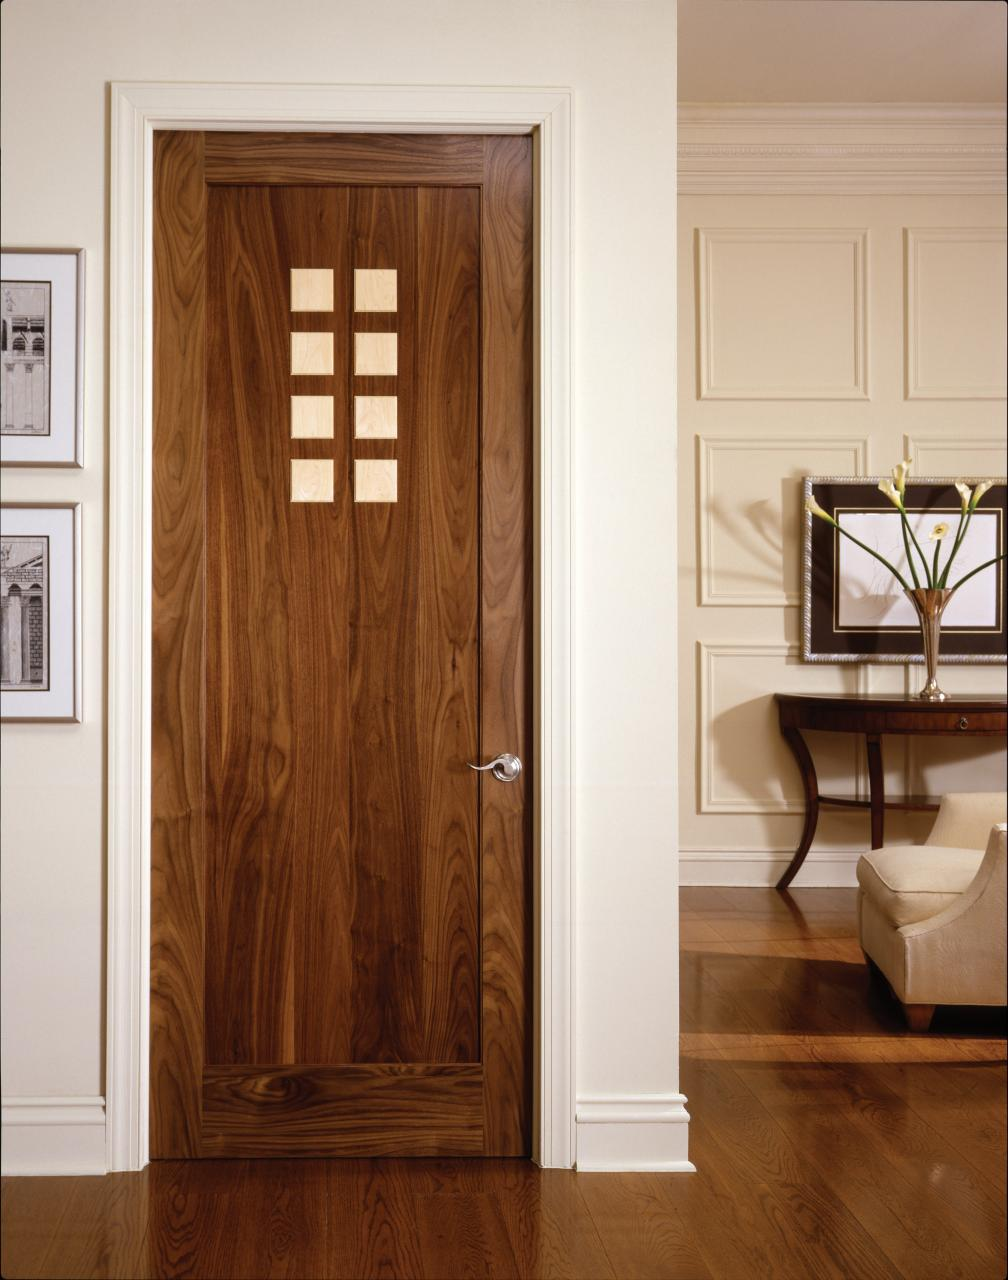 AD1010 Art Deco Door